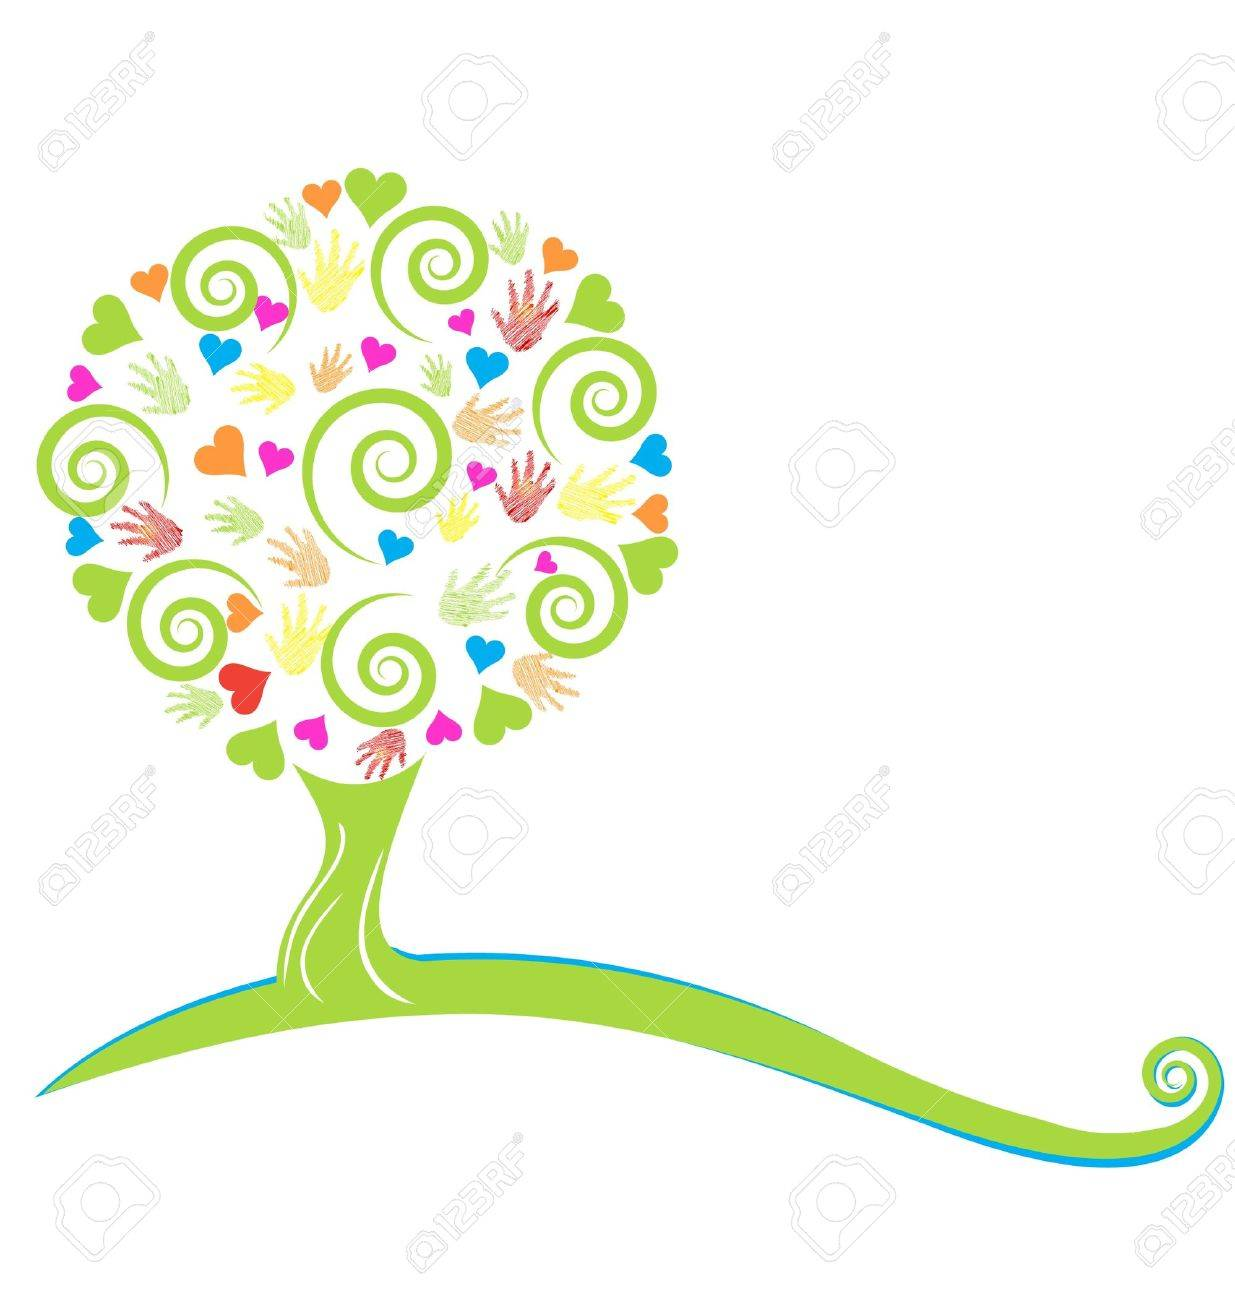 Tree ,hearts ,hands and swirly leaves logo Stock Vector - 18651711